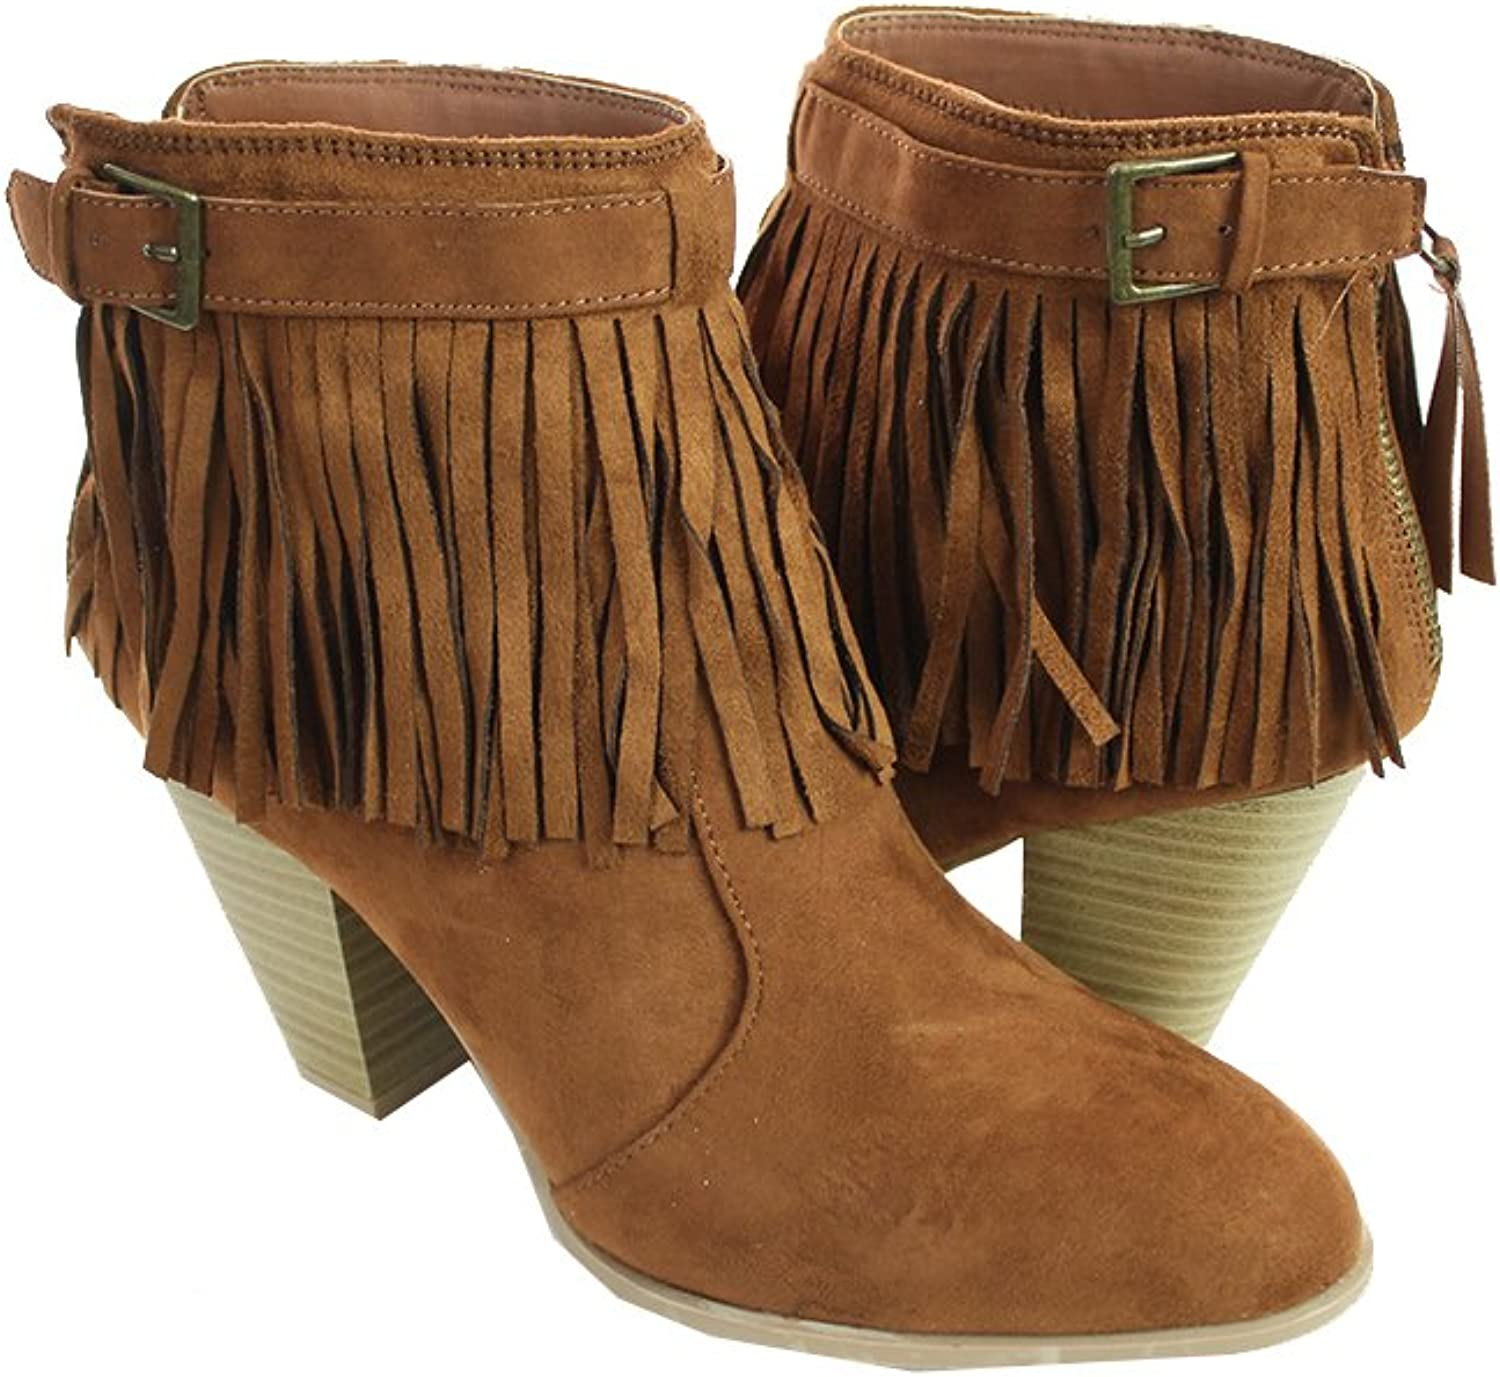 OTFL Qupid Womens Faux Suede Fringe Buckle Bootie Dark Rust 6.5